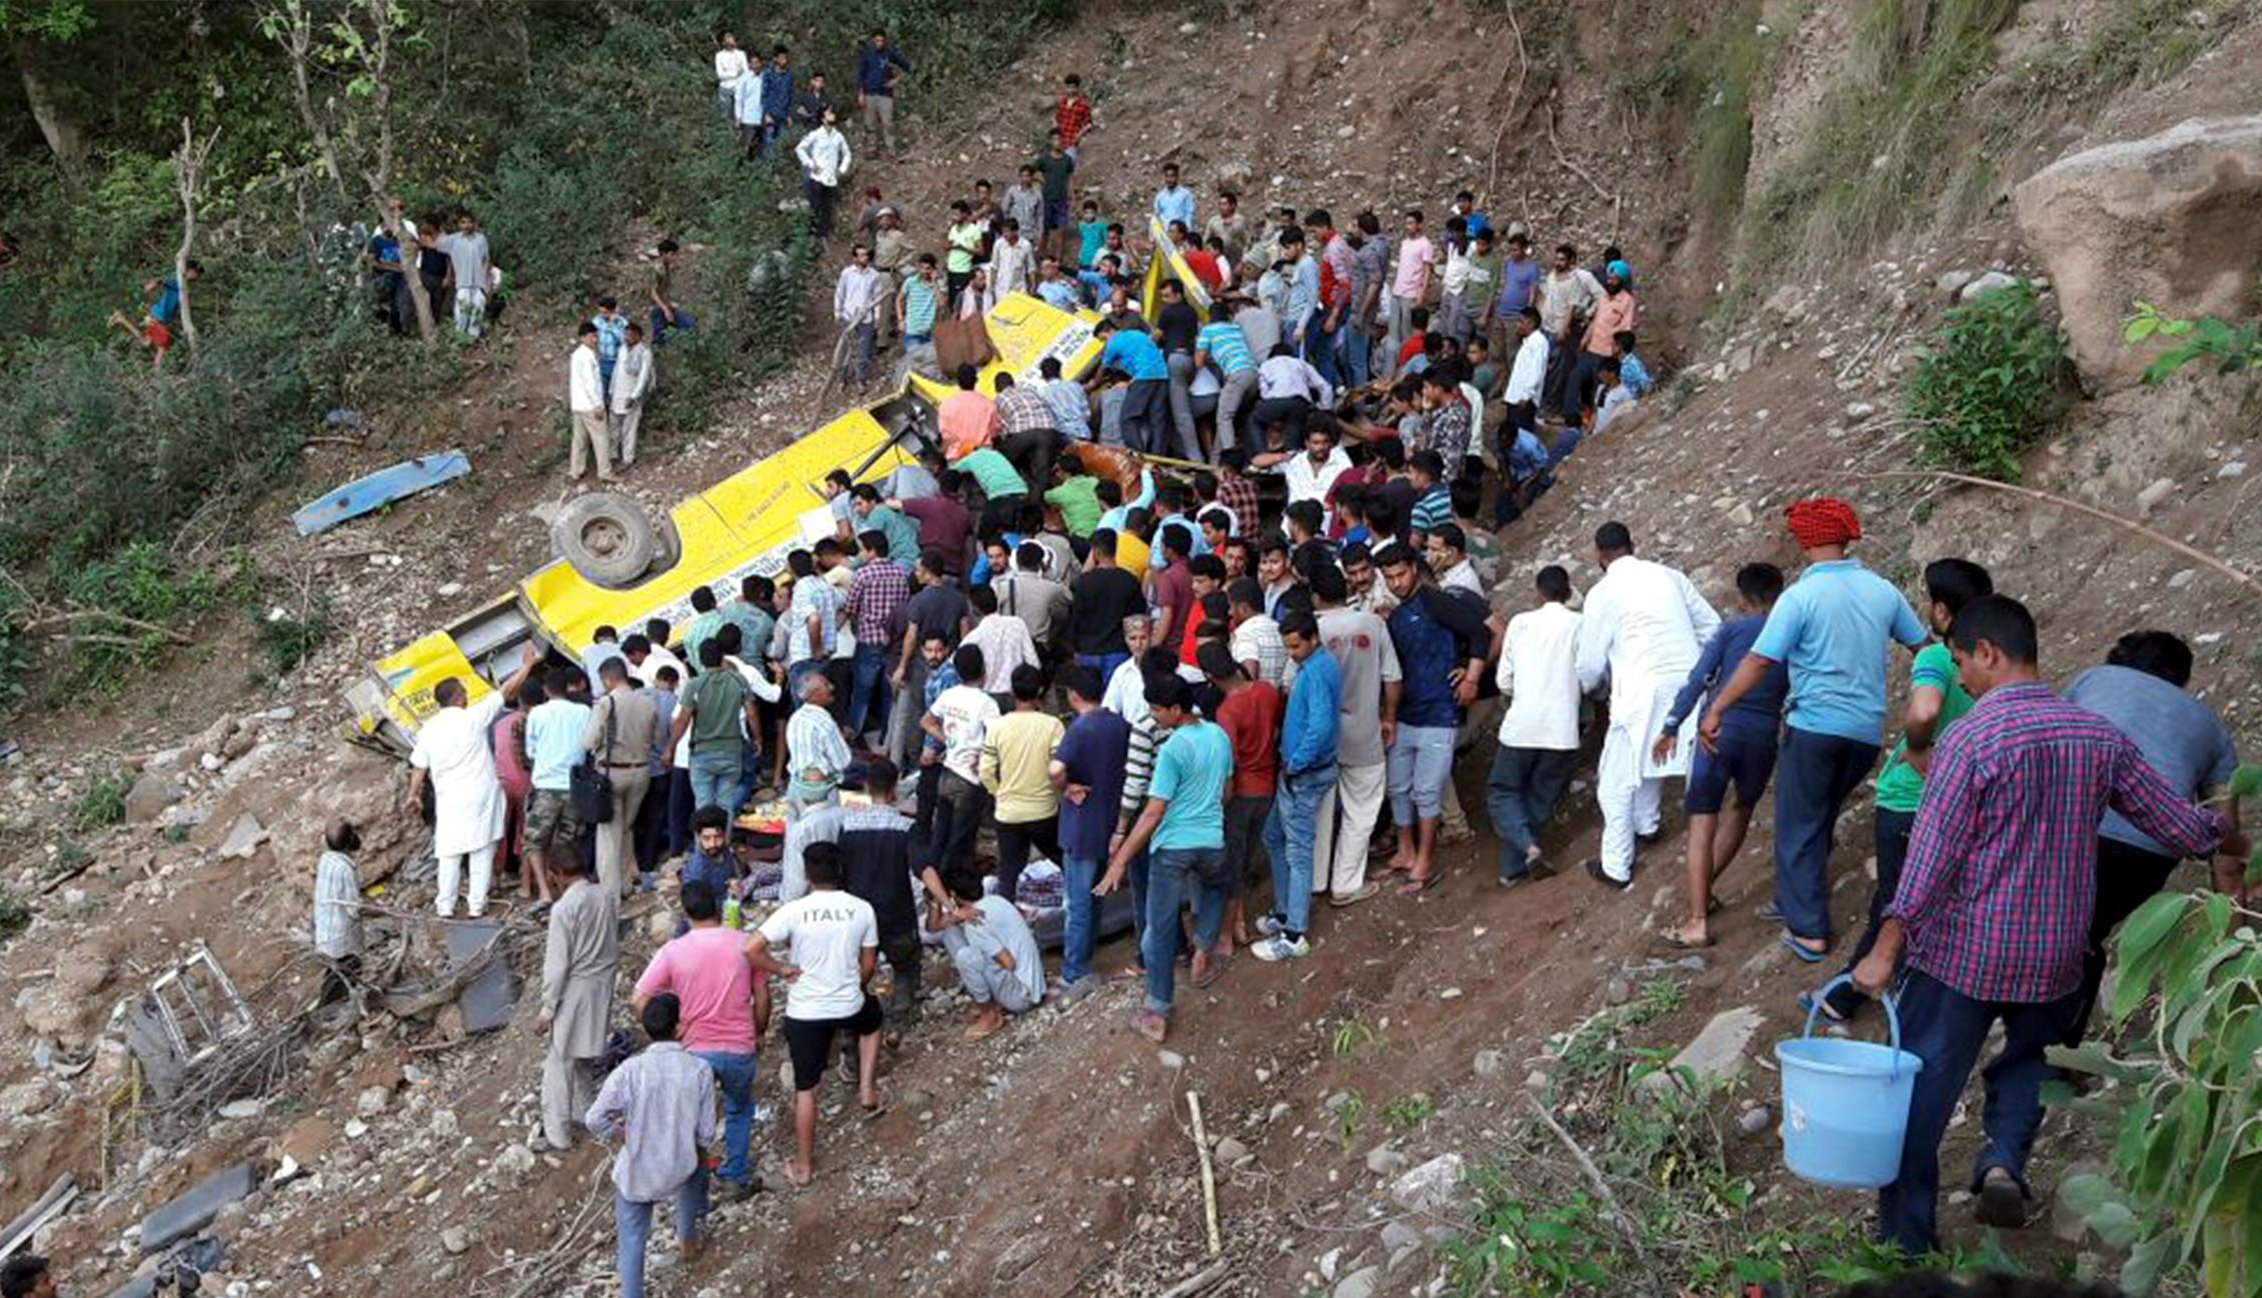 (180410) -- HIMACHAL PRADESH, April 10, 2018 (Xinhua) -- People gather at the site of a traffic accident in Kangra district of Himachal Pradesh, India, April 9, 2018. Around 20 school children were feared dead in India's northern state of Himachal Pradesh on Monday evening, when the school-bus they were travelling in fell into a deep gorge, a senior state government official confirmed to Xinhua. (Xinhua) (srb)